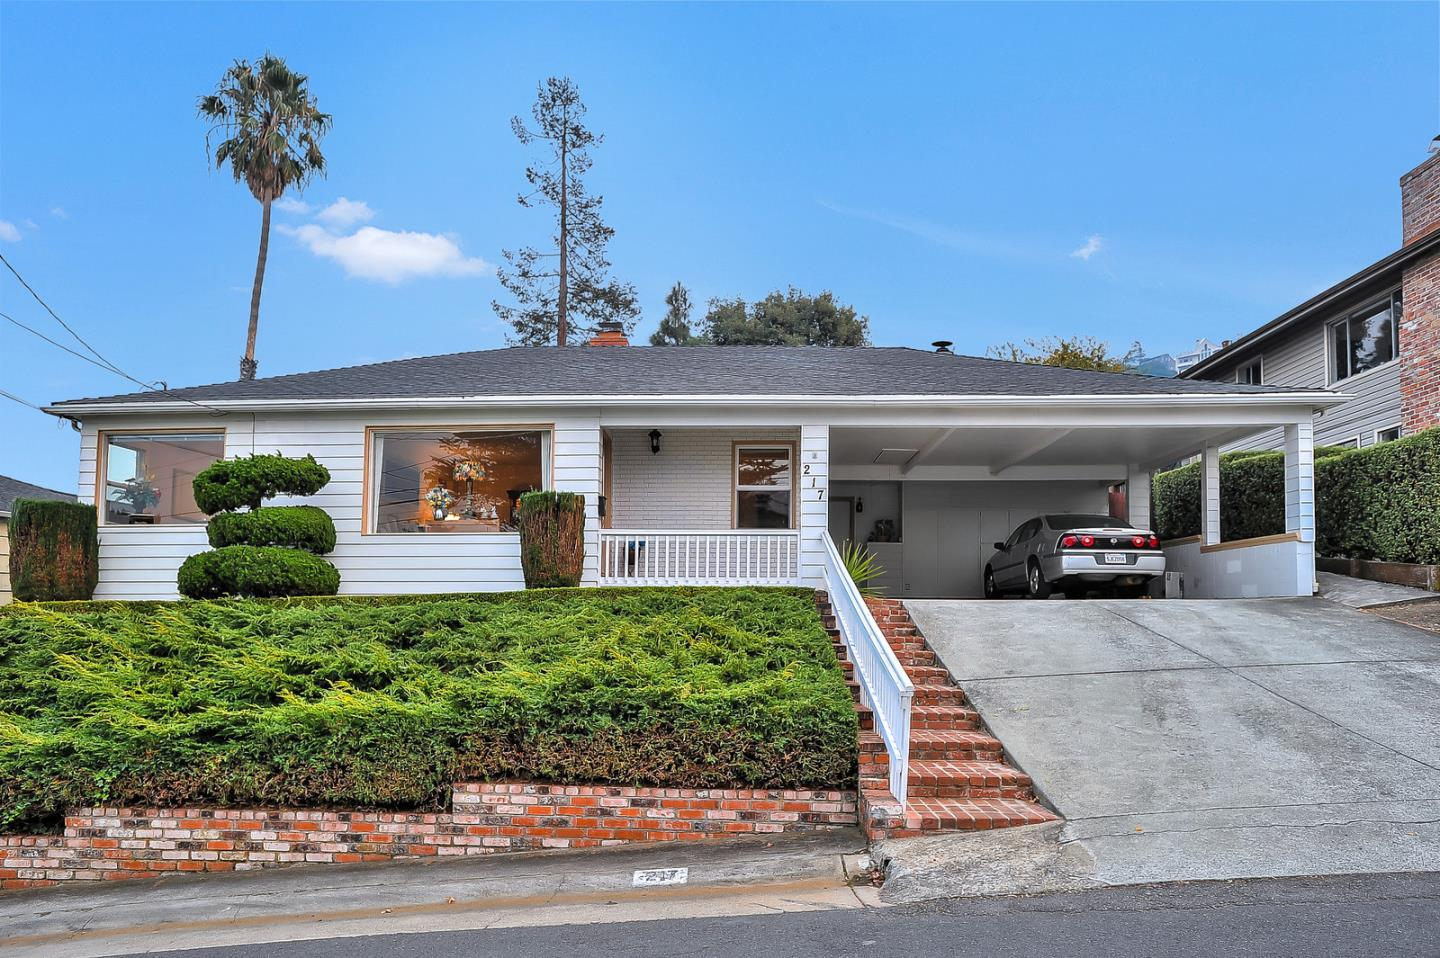 217 We 40th Avenue San Mateo, CA 94403 - MLS #: ML81731243